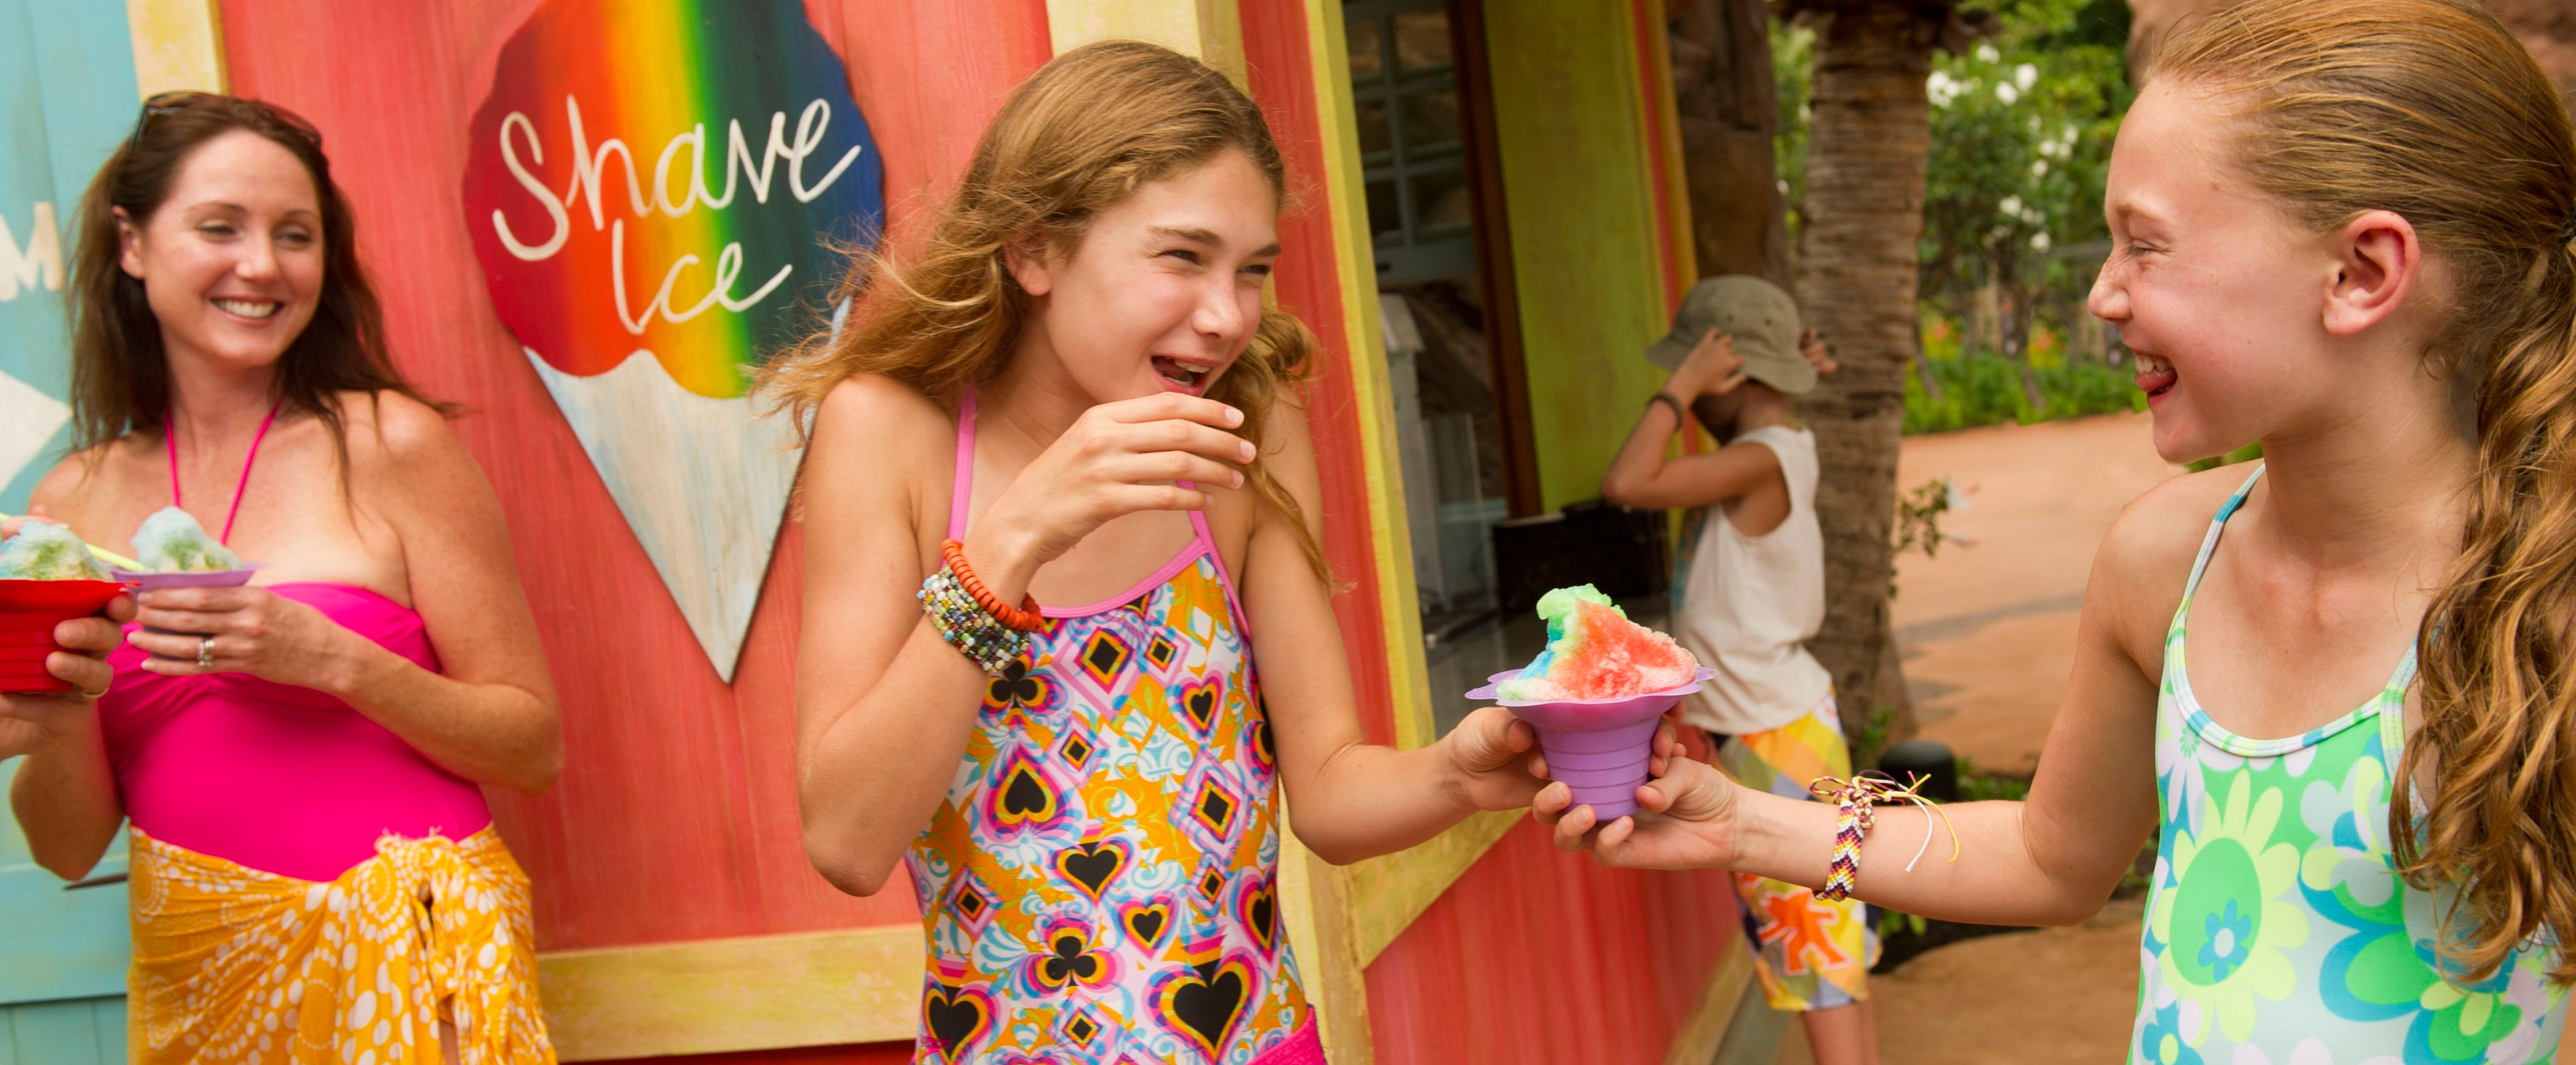 Two tween girls in swimwear laugh while clutching a shave ice dessert as a woman holding a shave ice looks on